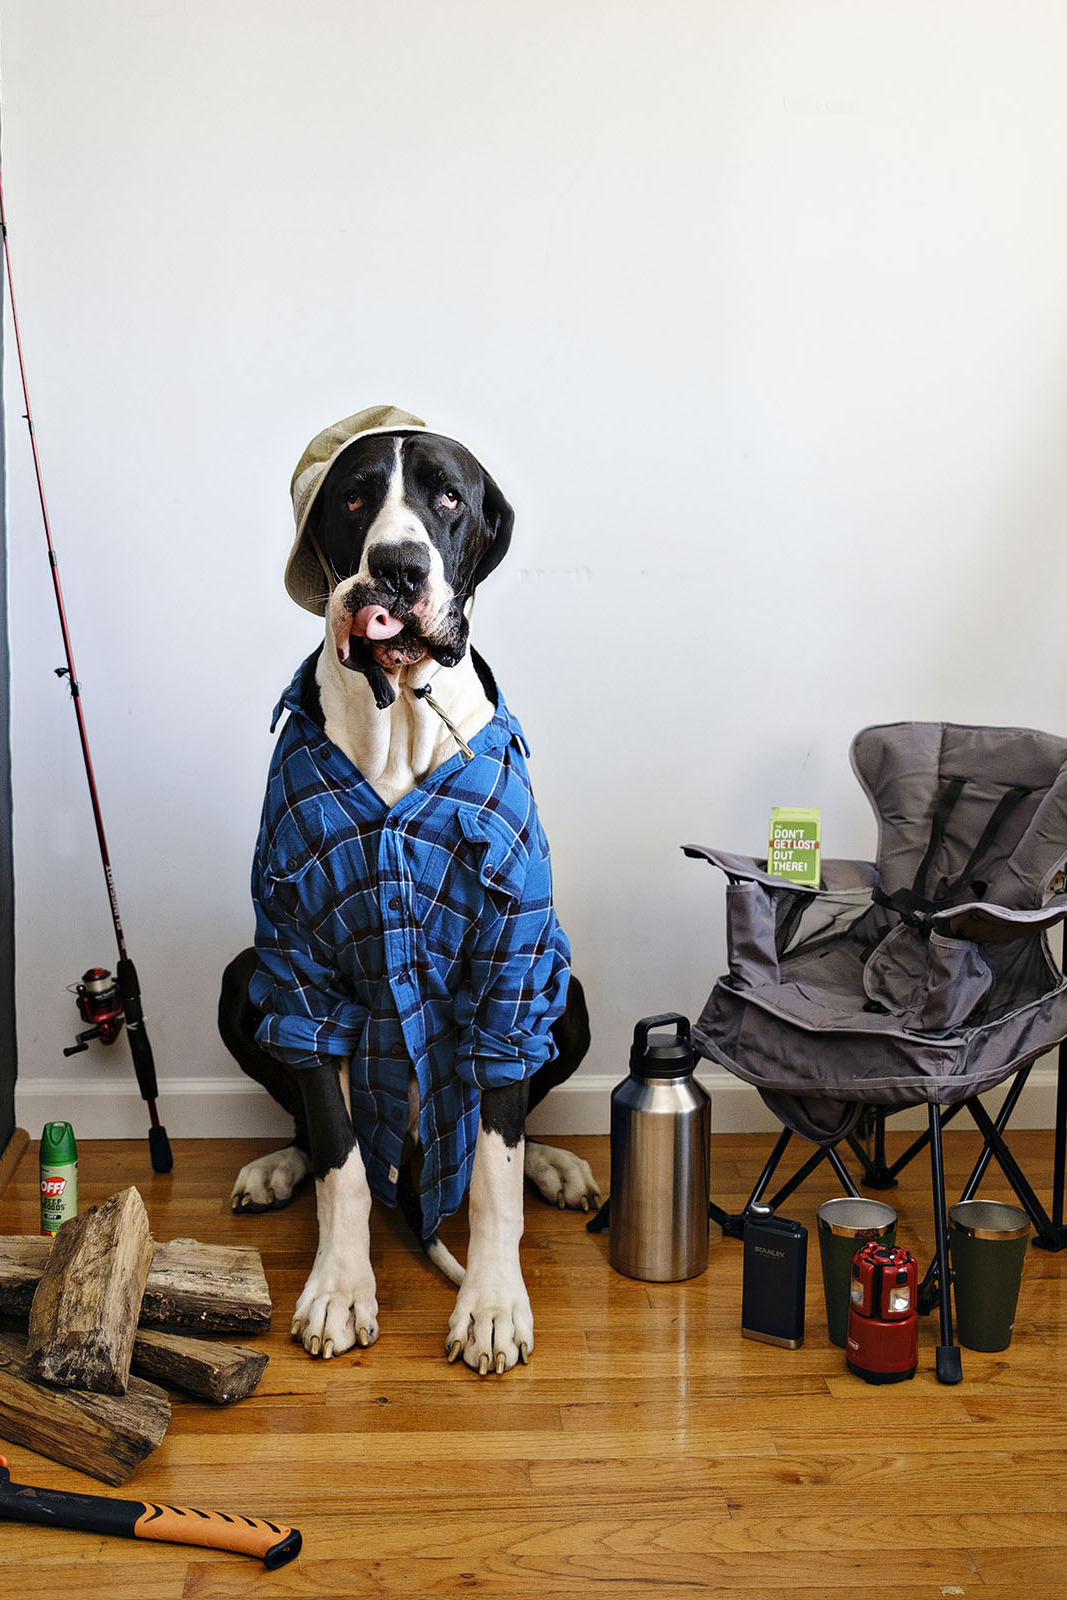 Funny dog photo of a great dane dressed as fisherman